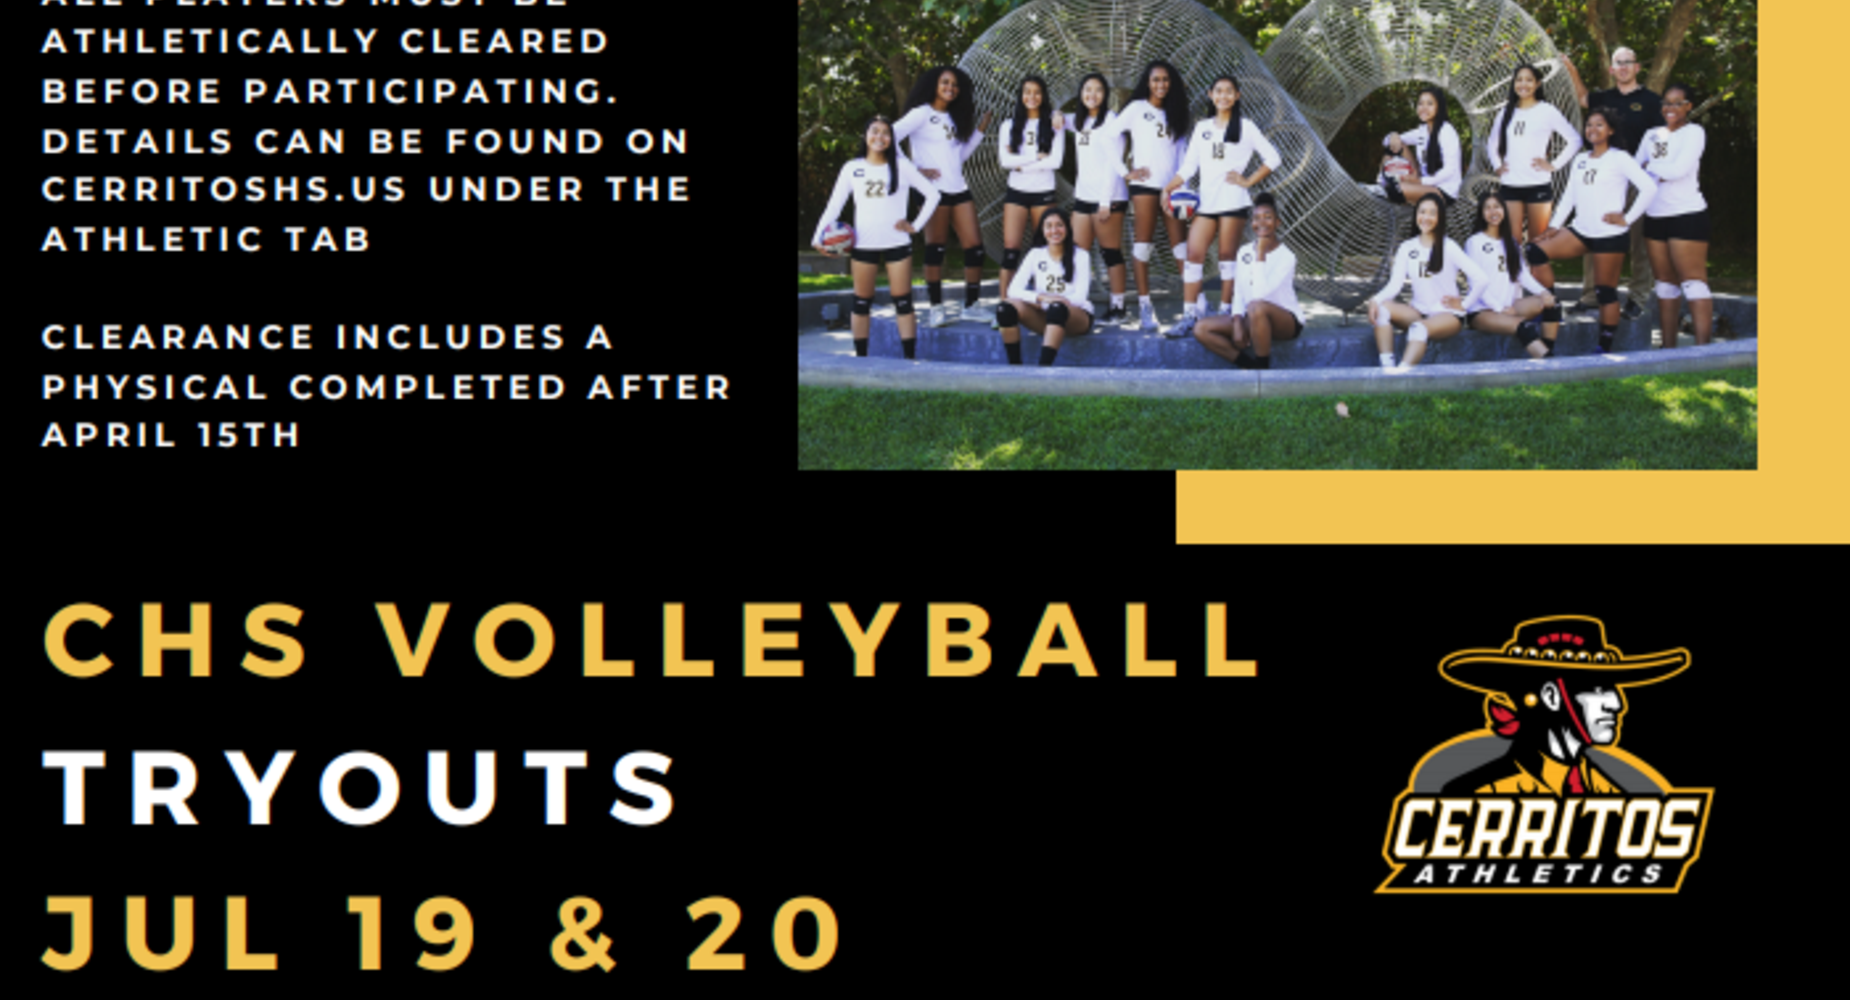 CHS Volleyball Tryouts 7/19 and 7/20